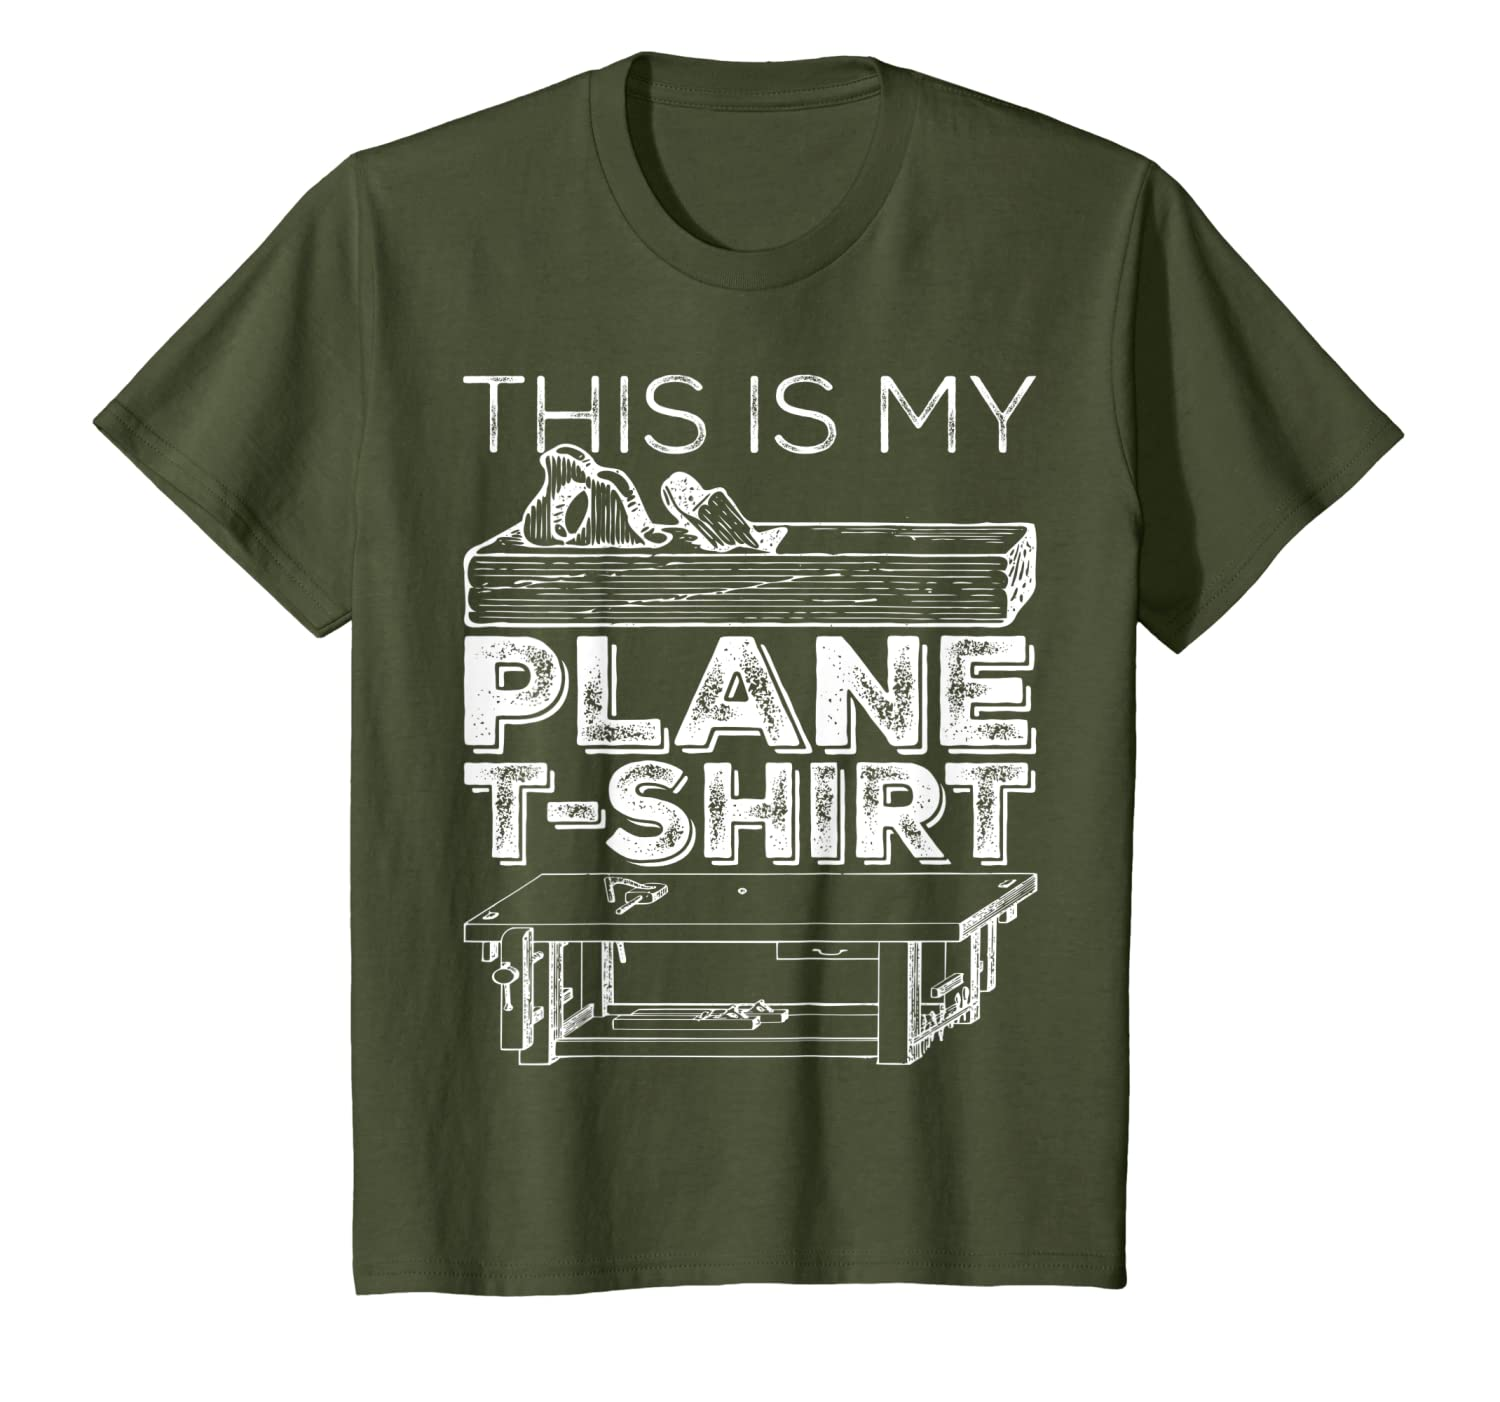 This Is My Plane Woodworking Carpentry Tools T-Shirt